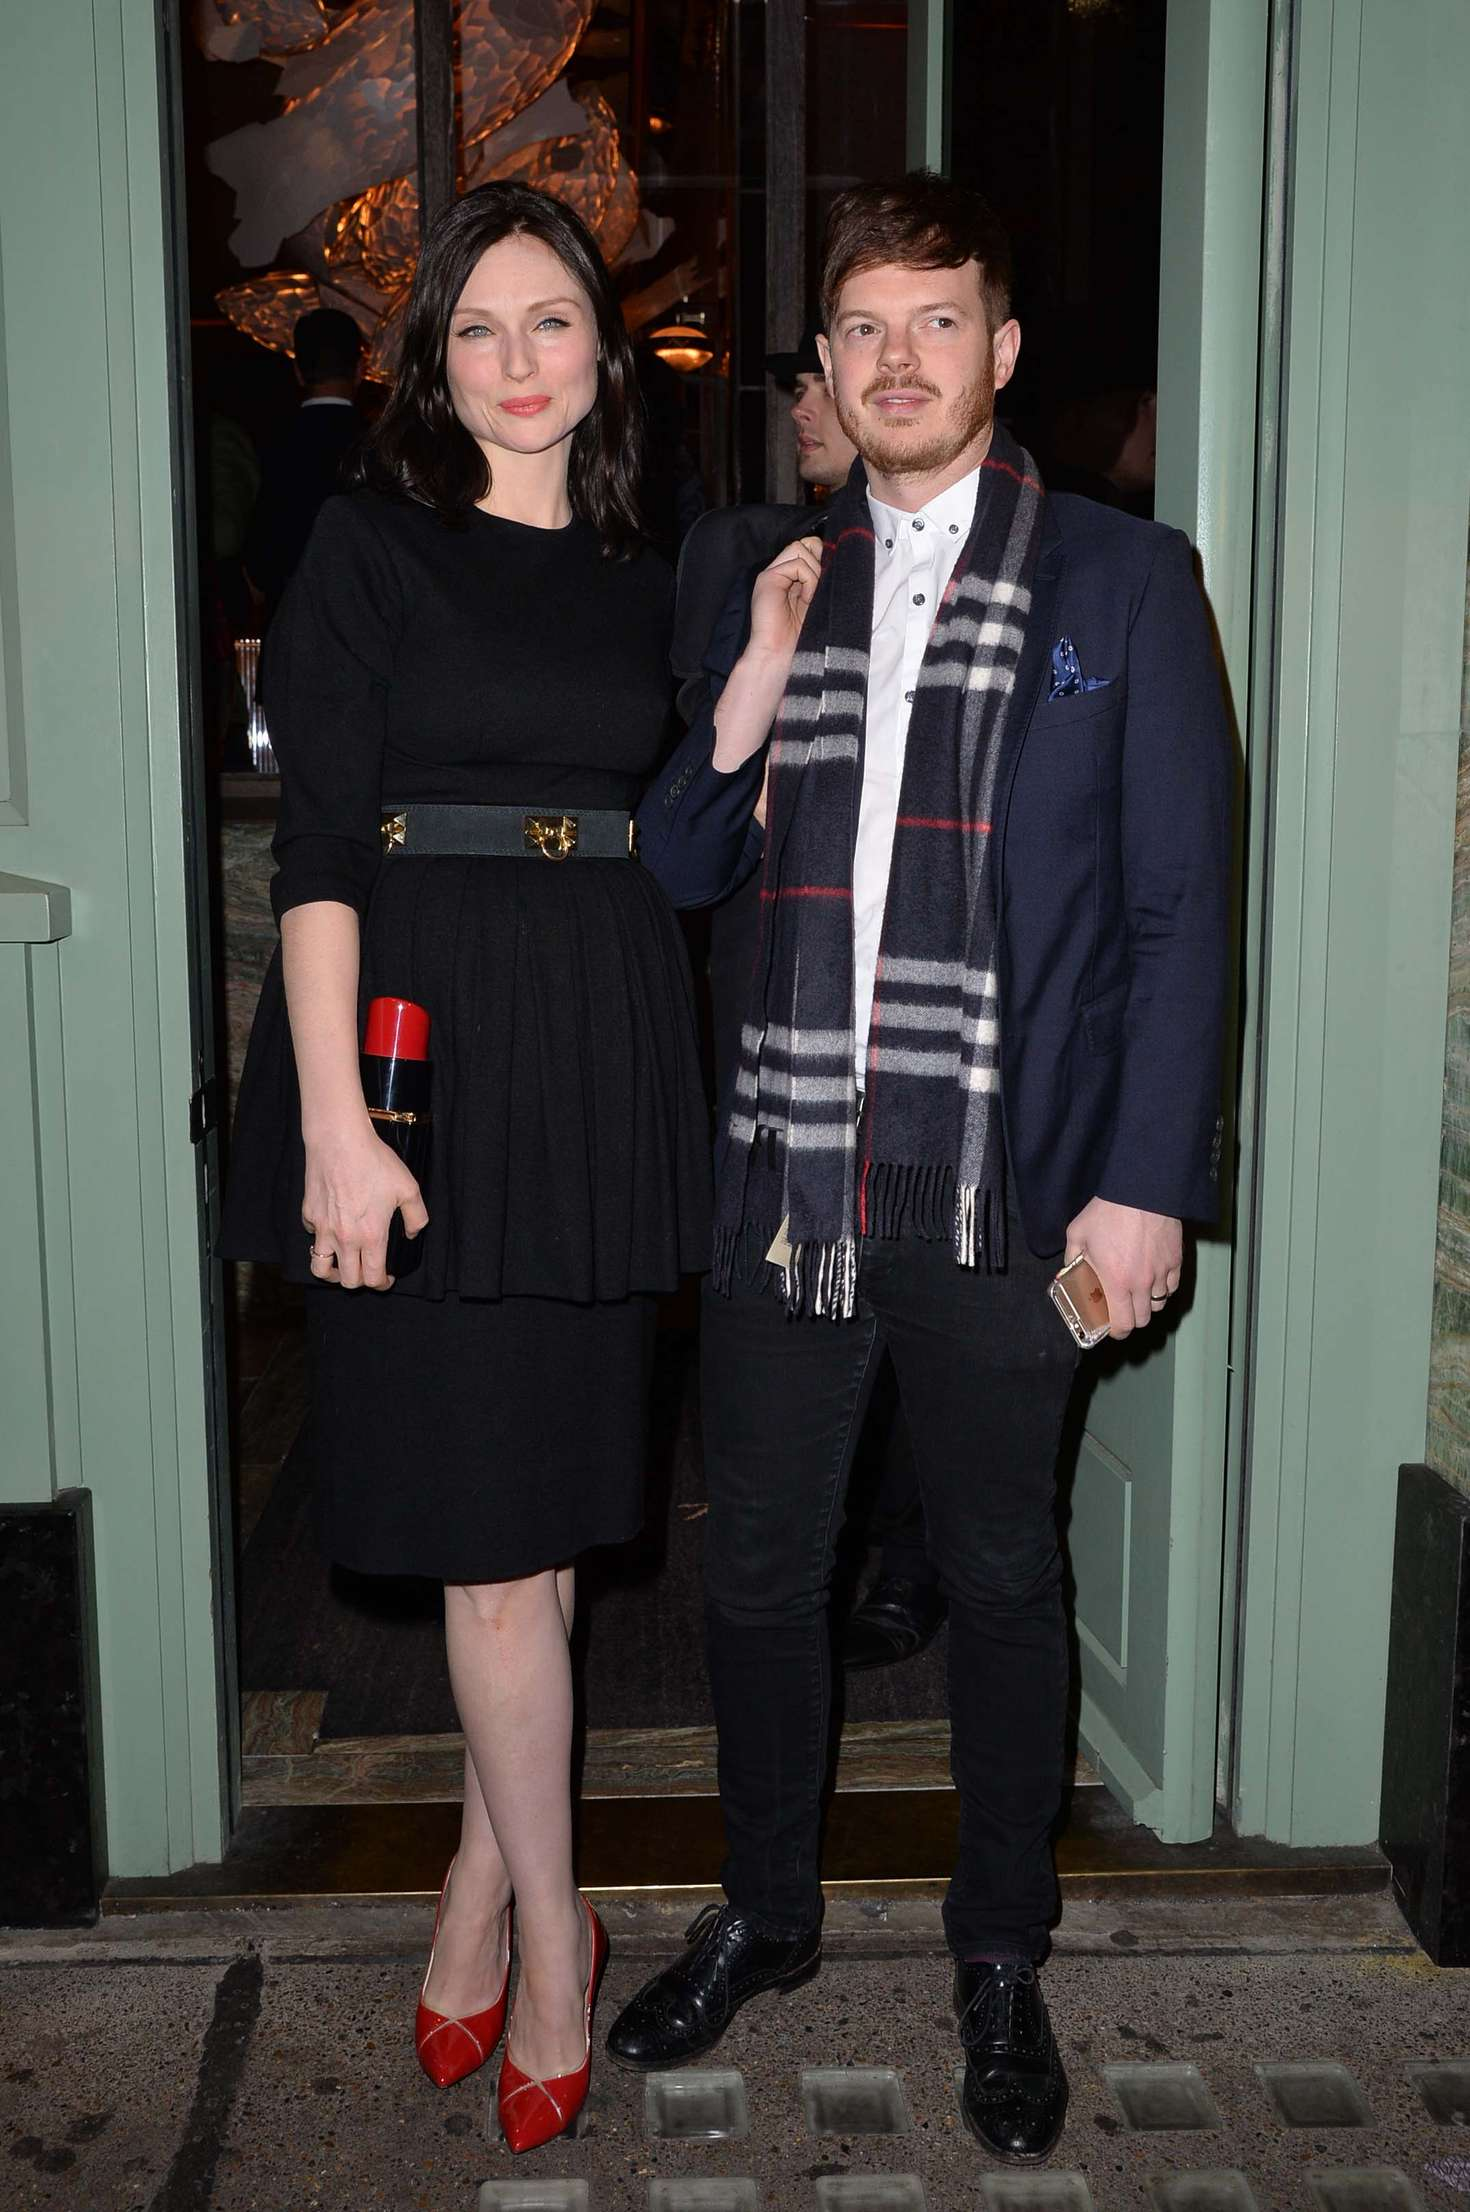 Sophie Ellis-Bextor at Private Dinner of Creme de la Mer in London